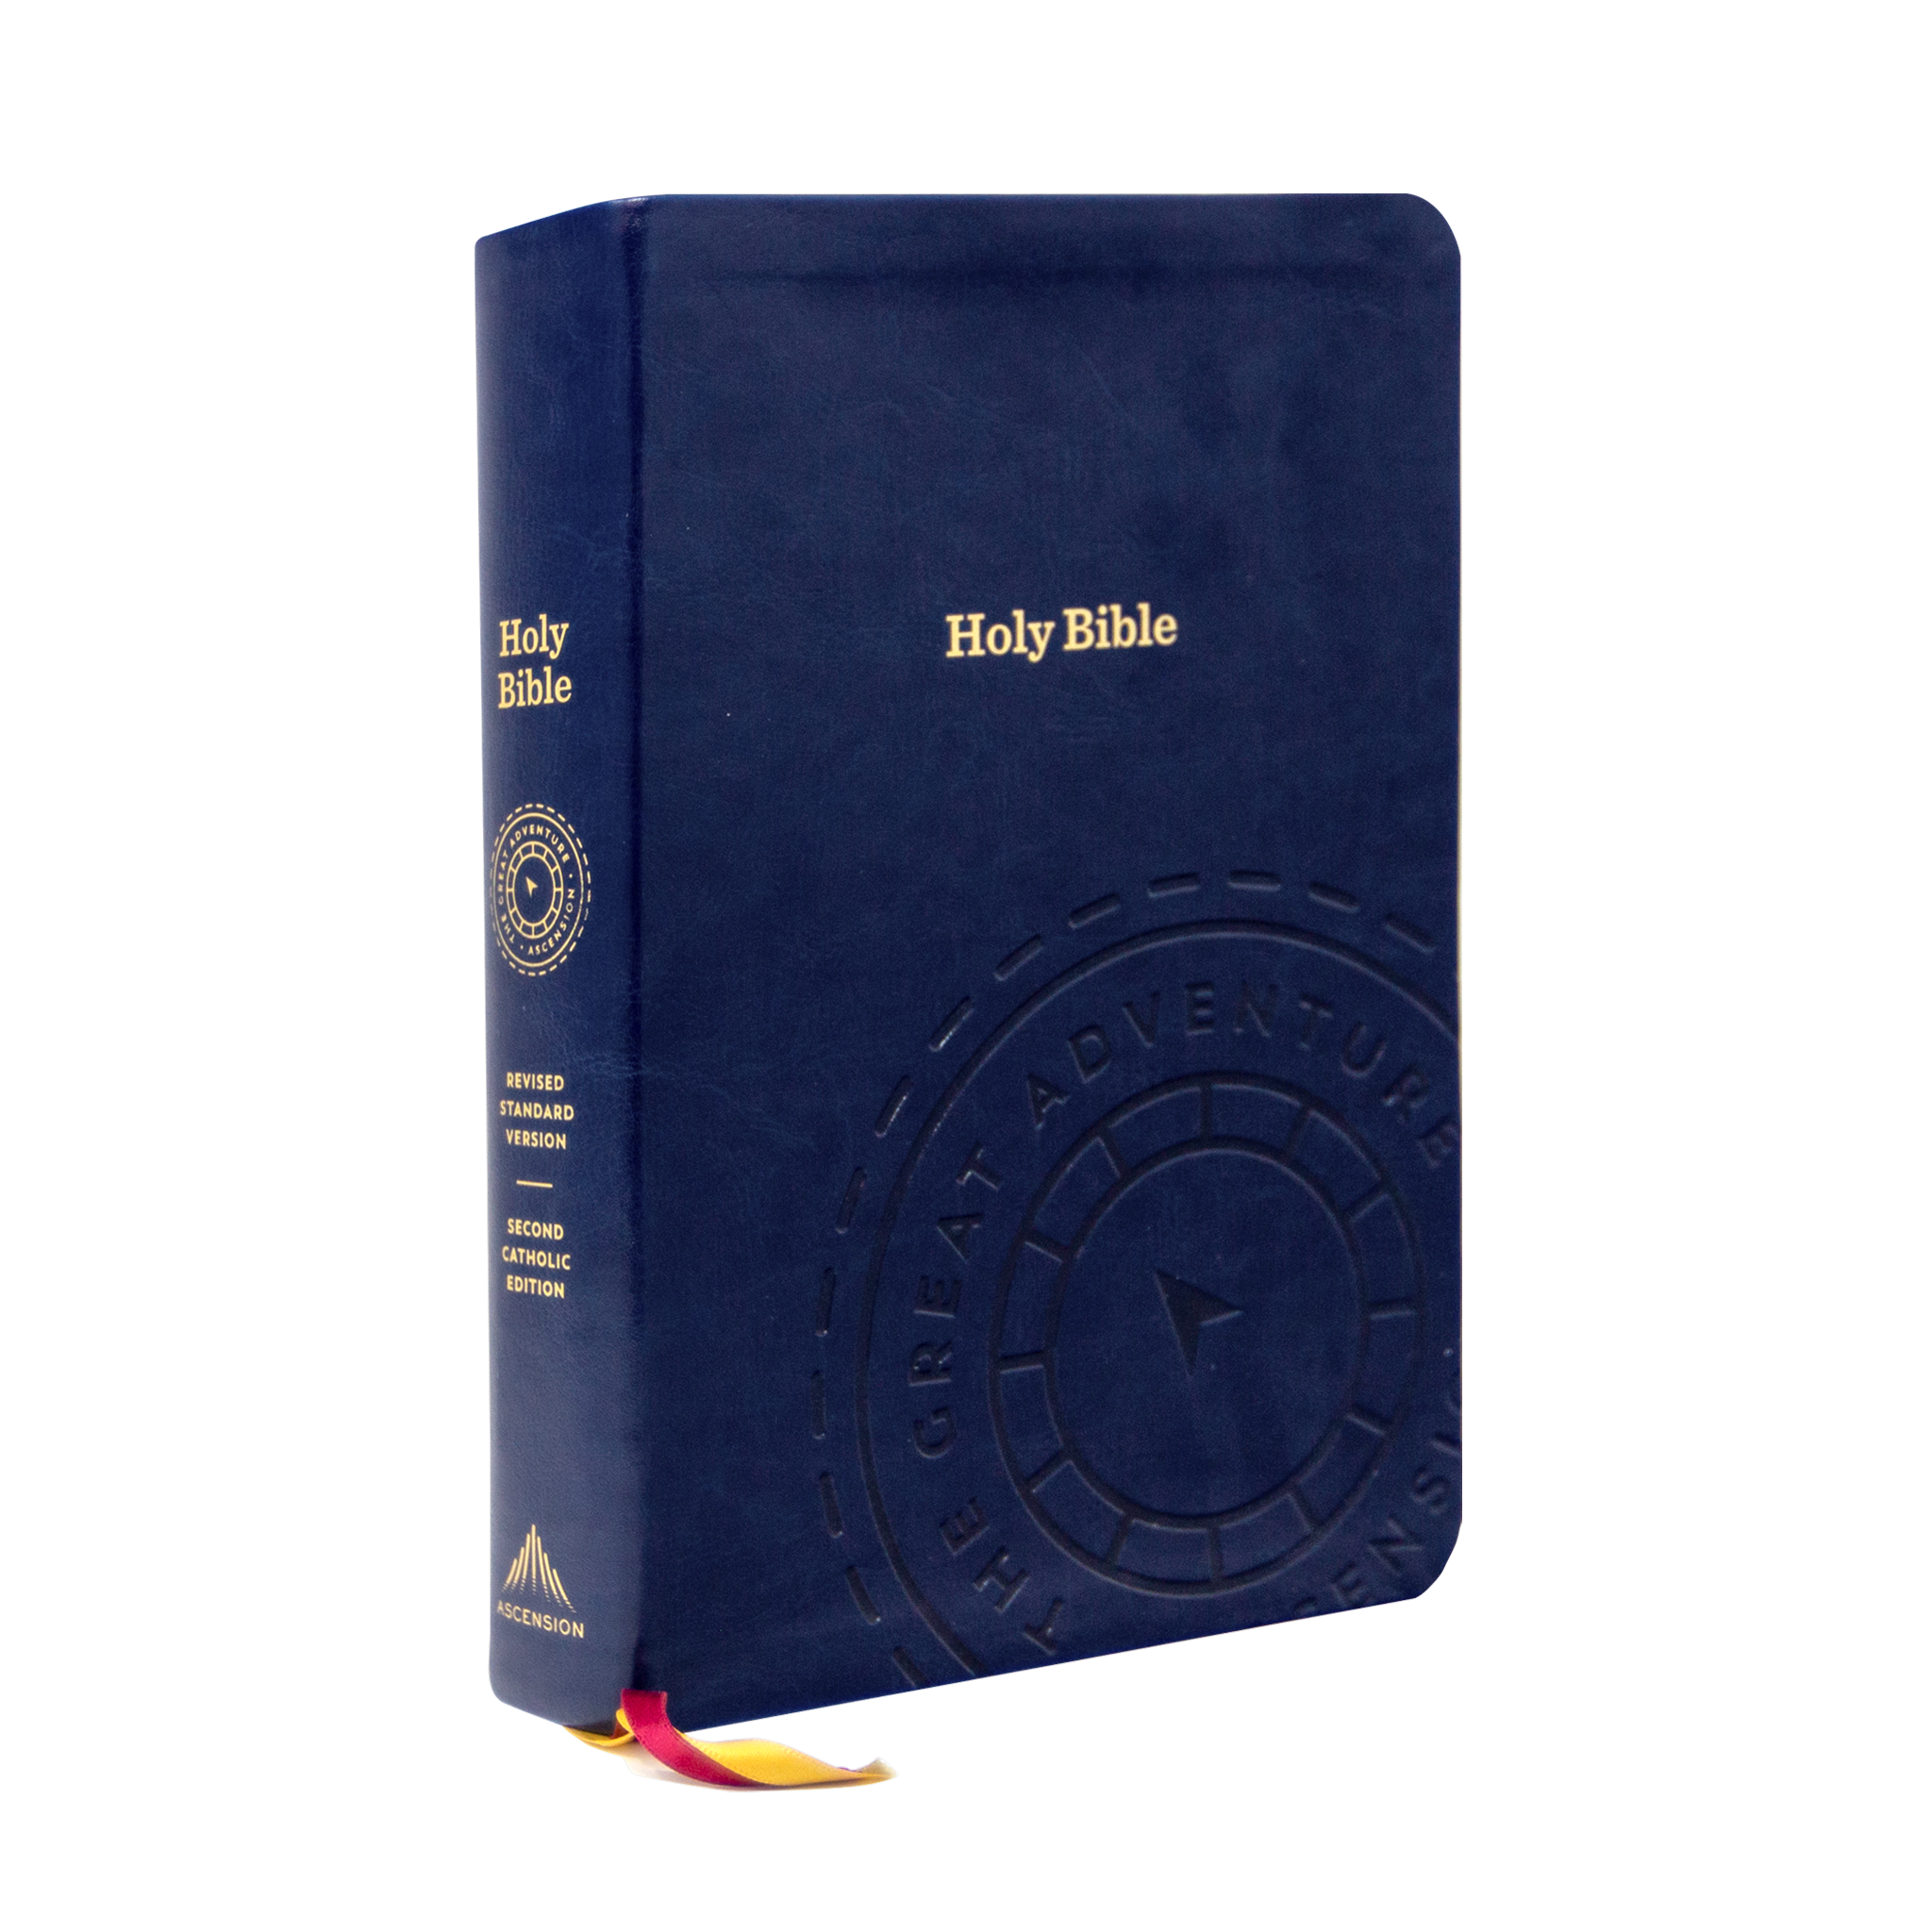 "The Great Adventure Catholic Bible from Jeff Cavins and Ascension with the blue leather cover and gold words ""Holy Bible"" engraved on it"